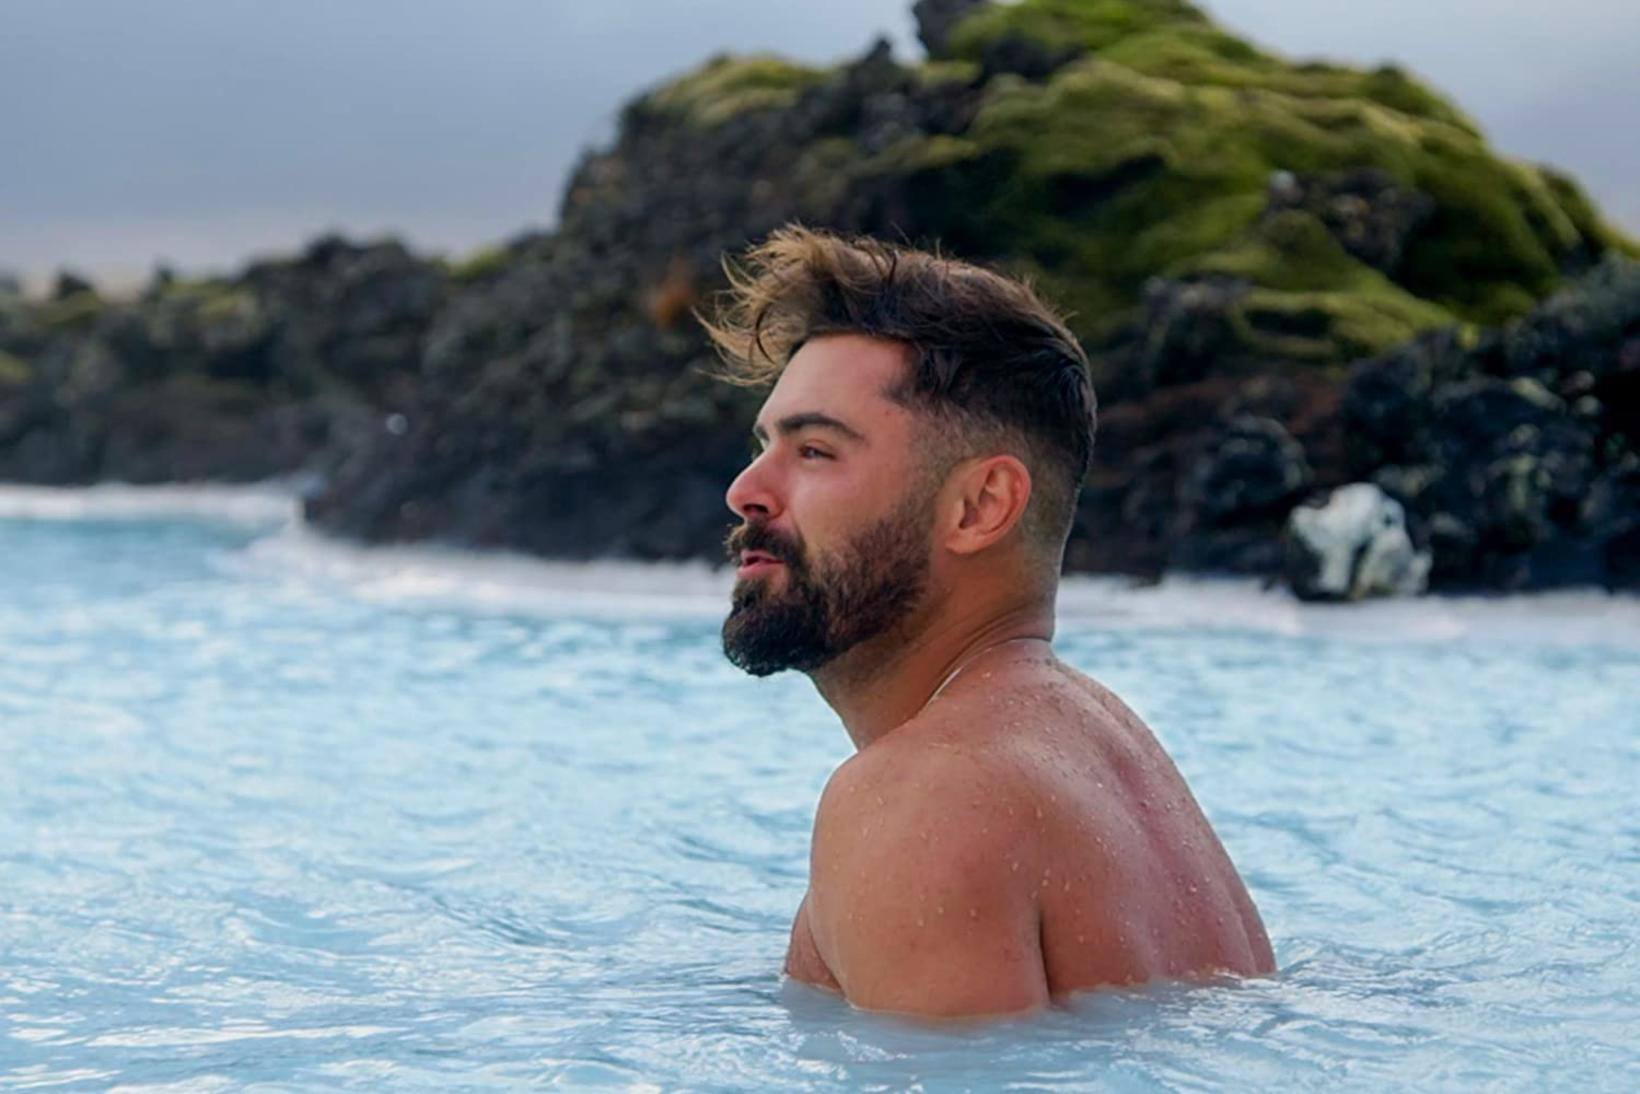 Down to earth with Zac Efron in Iceland